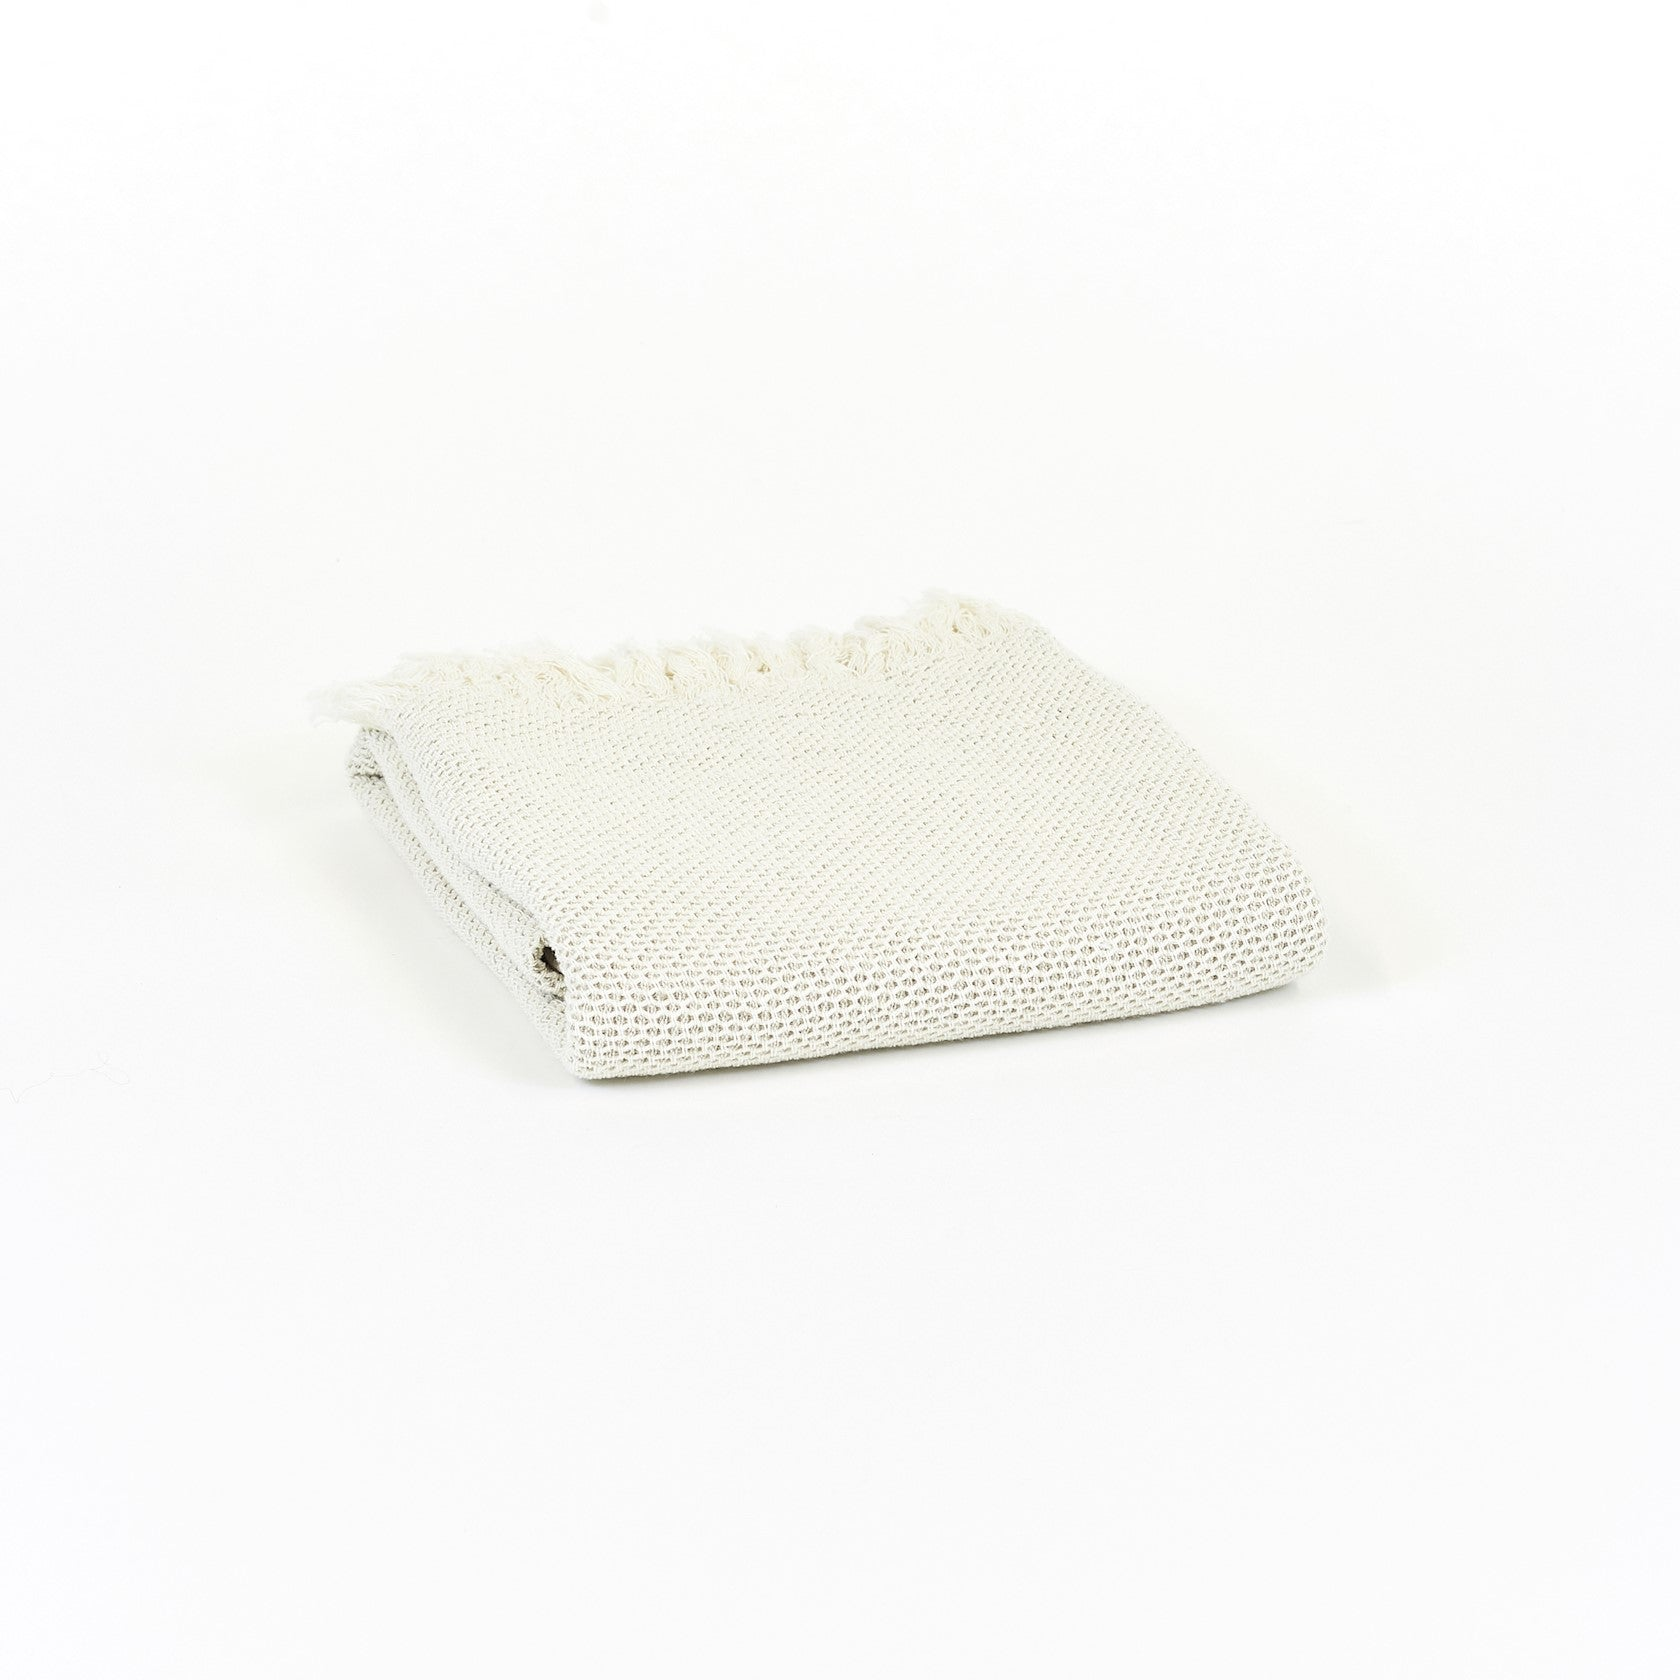 TOWEL 'HONEYCOMB' - Bath Linen - SCAPA HOME - SCAPA HOME OFFICIAL